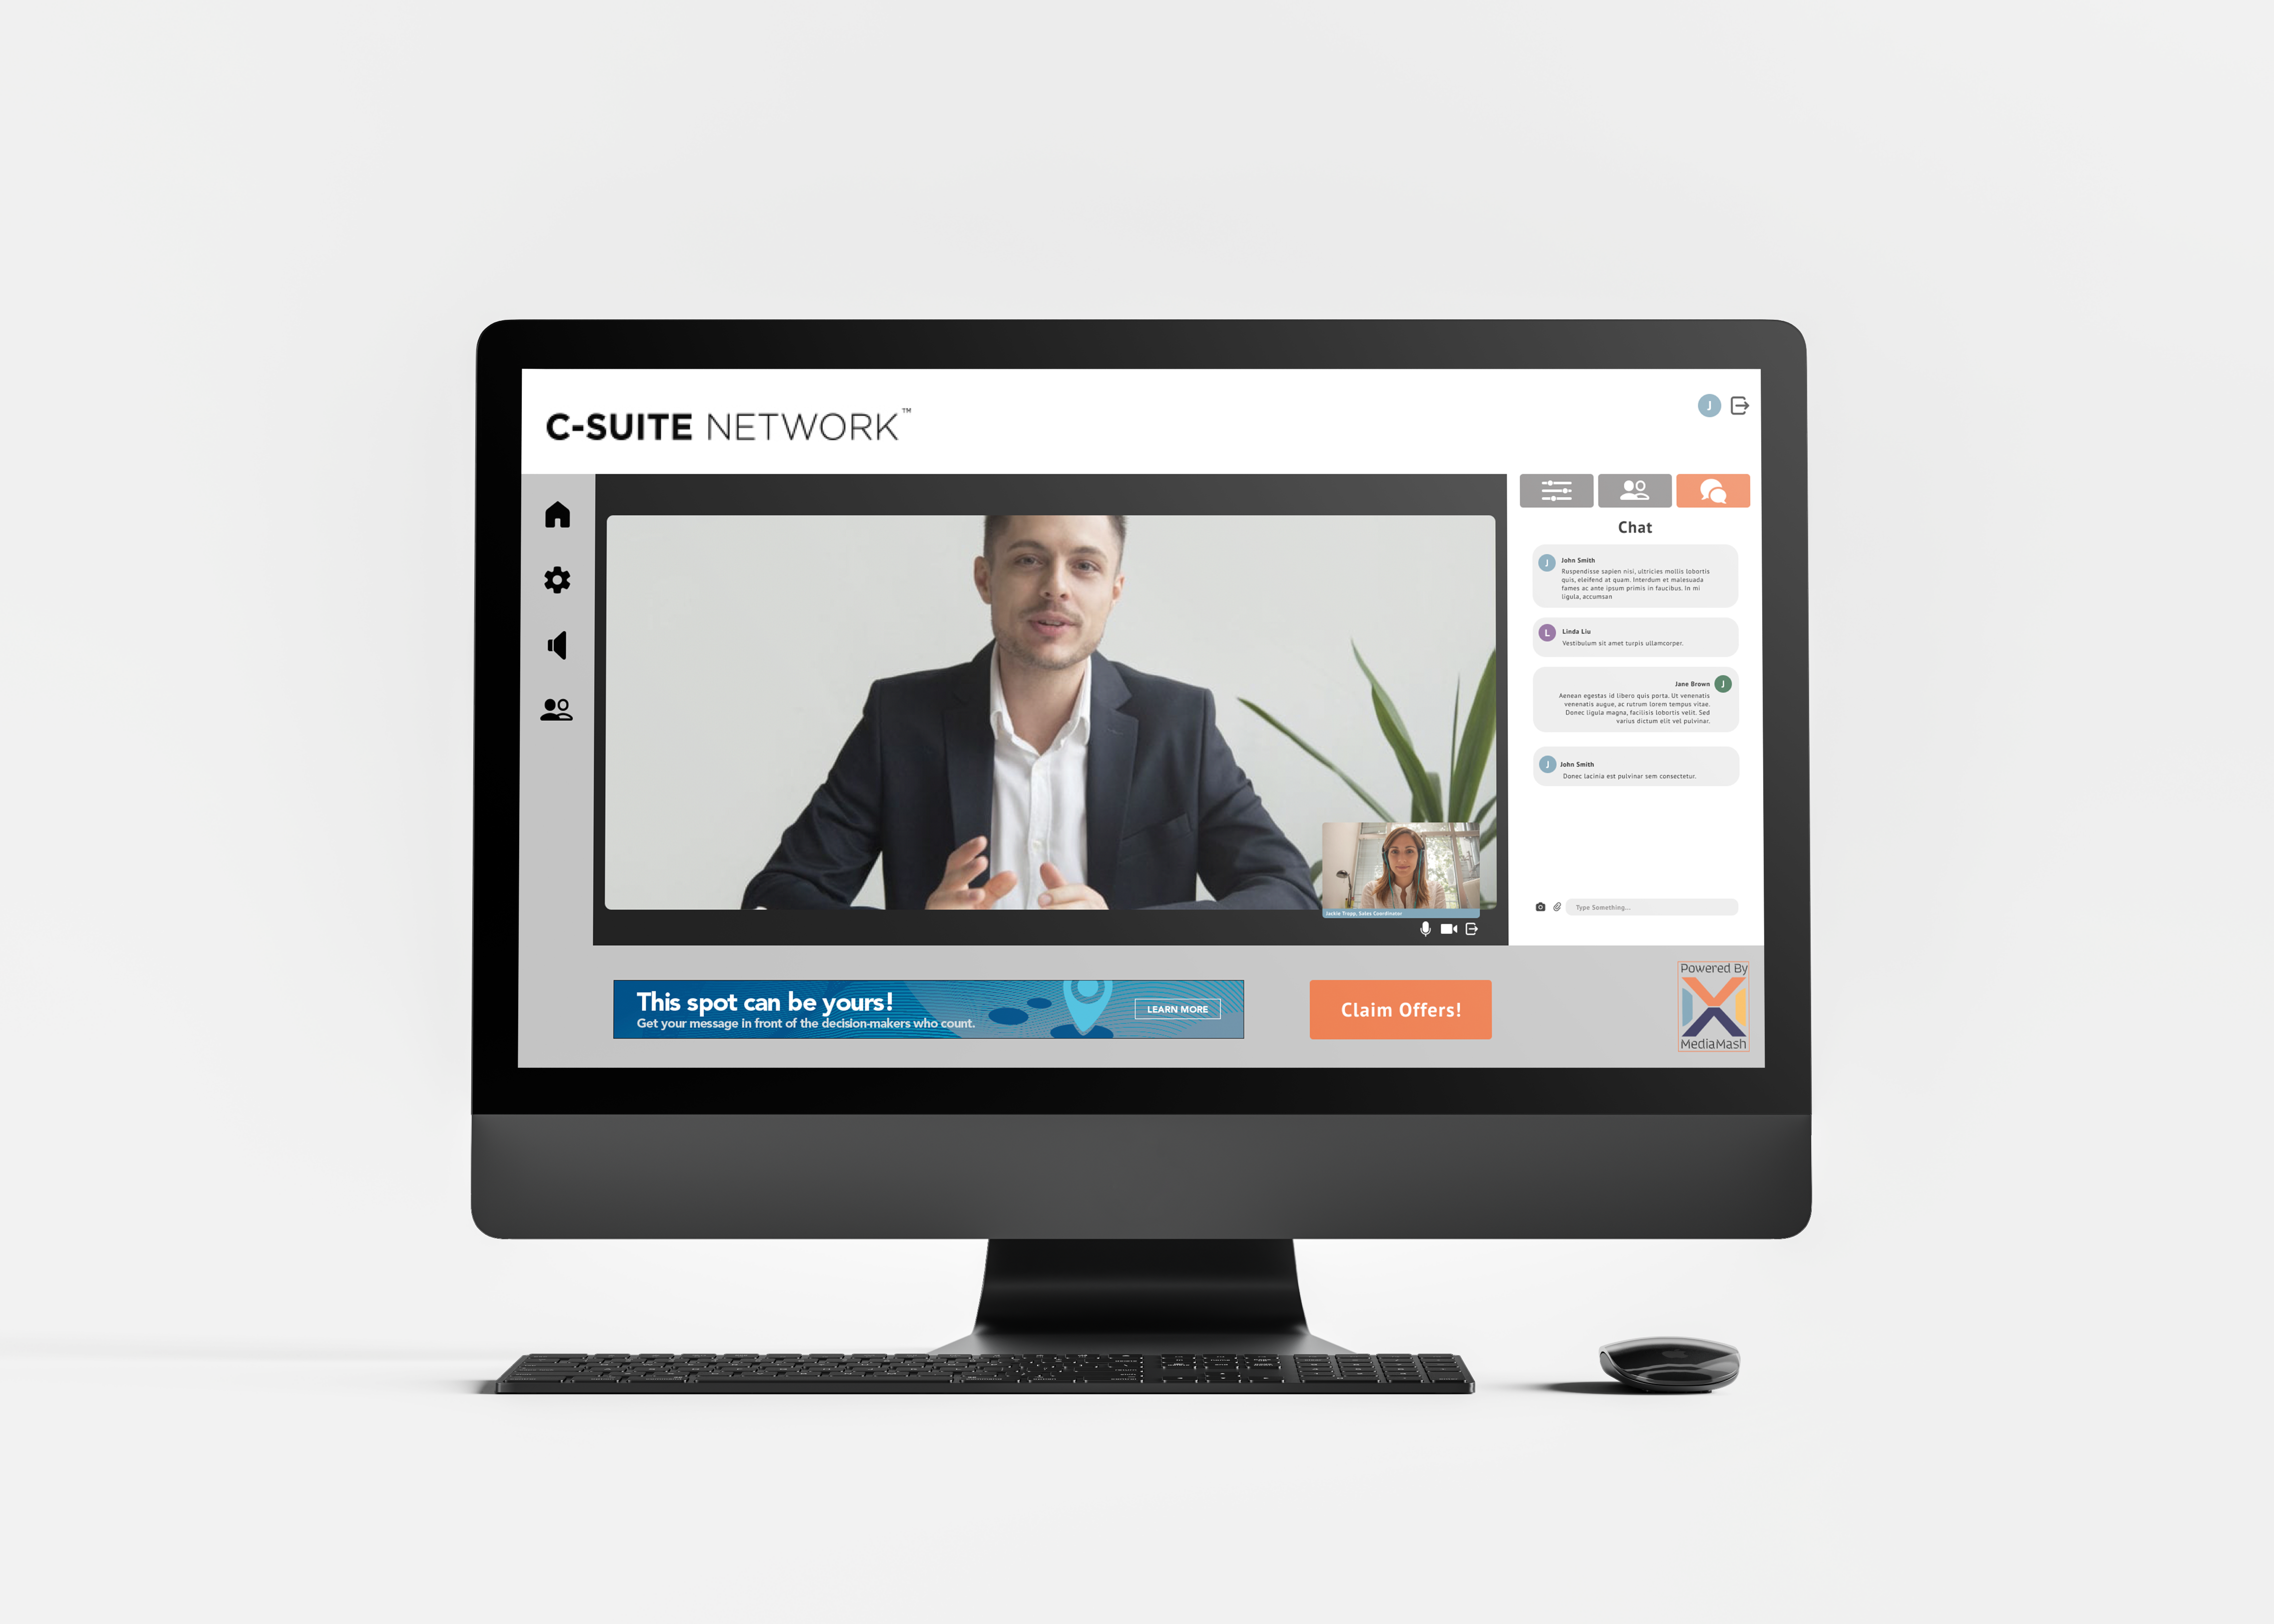 Video Conference Interface